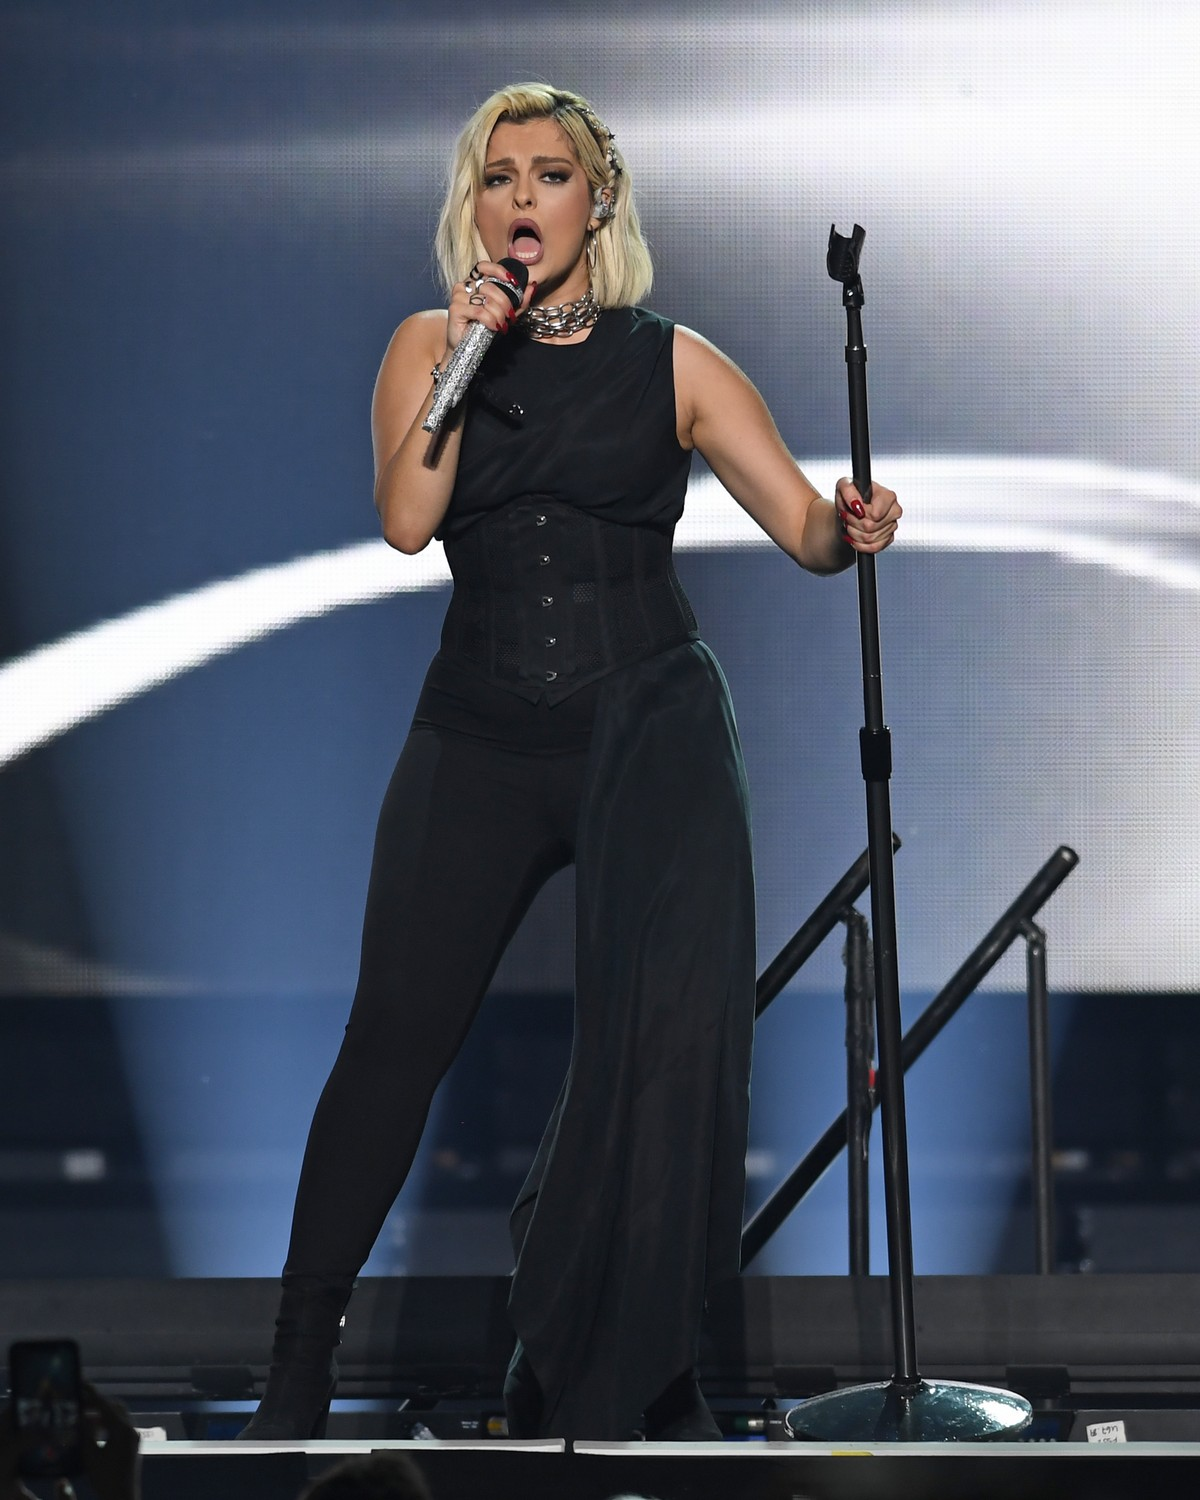 Bebe Rexha performs at the BB&T Center in Sunrise 2019/11/15 4